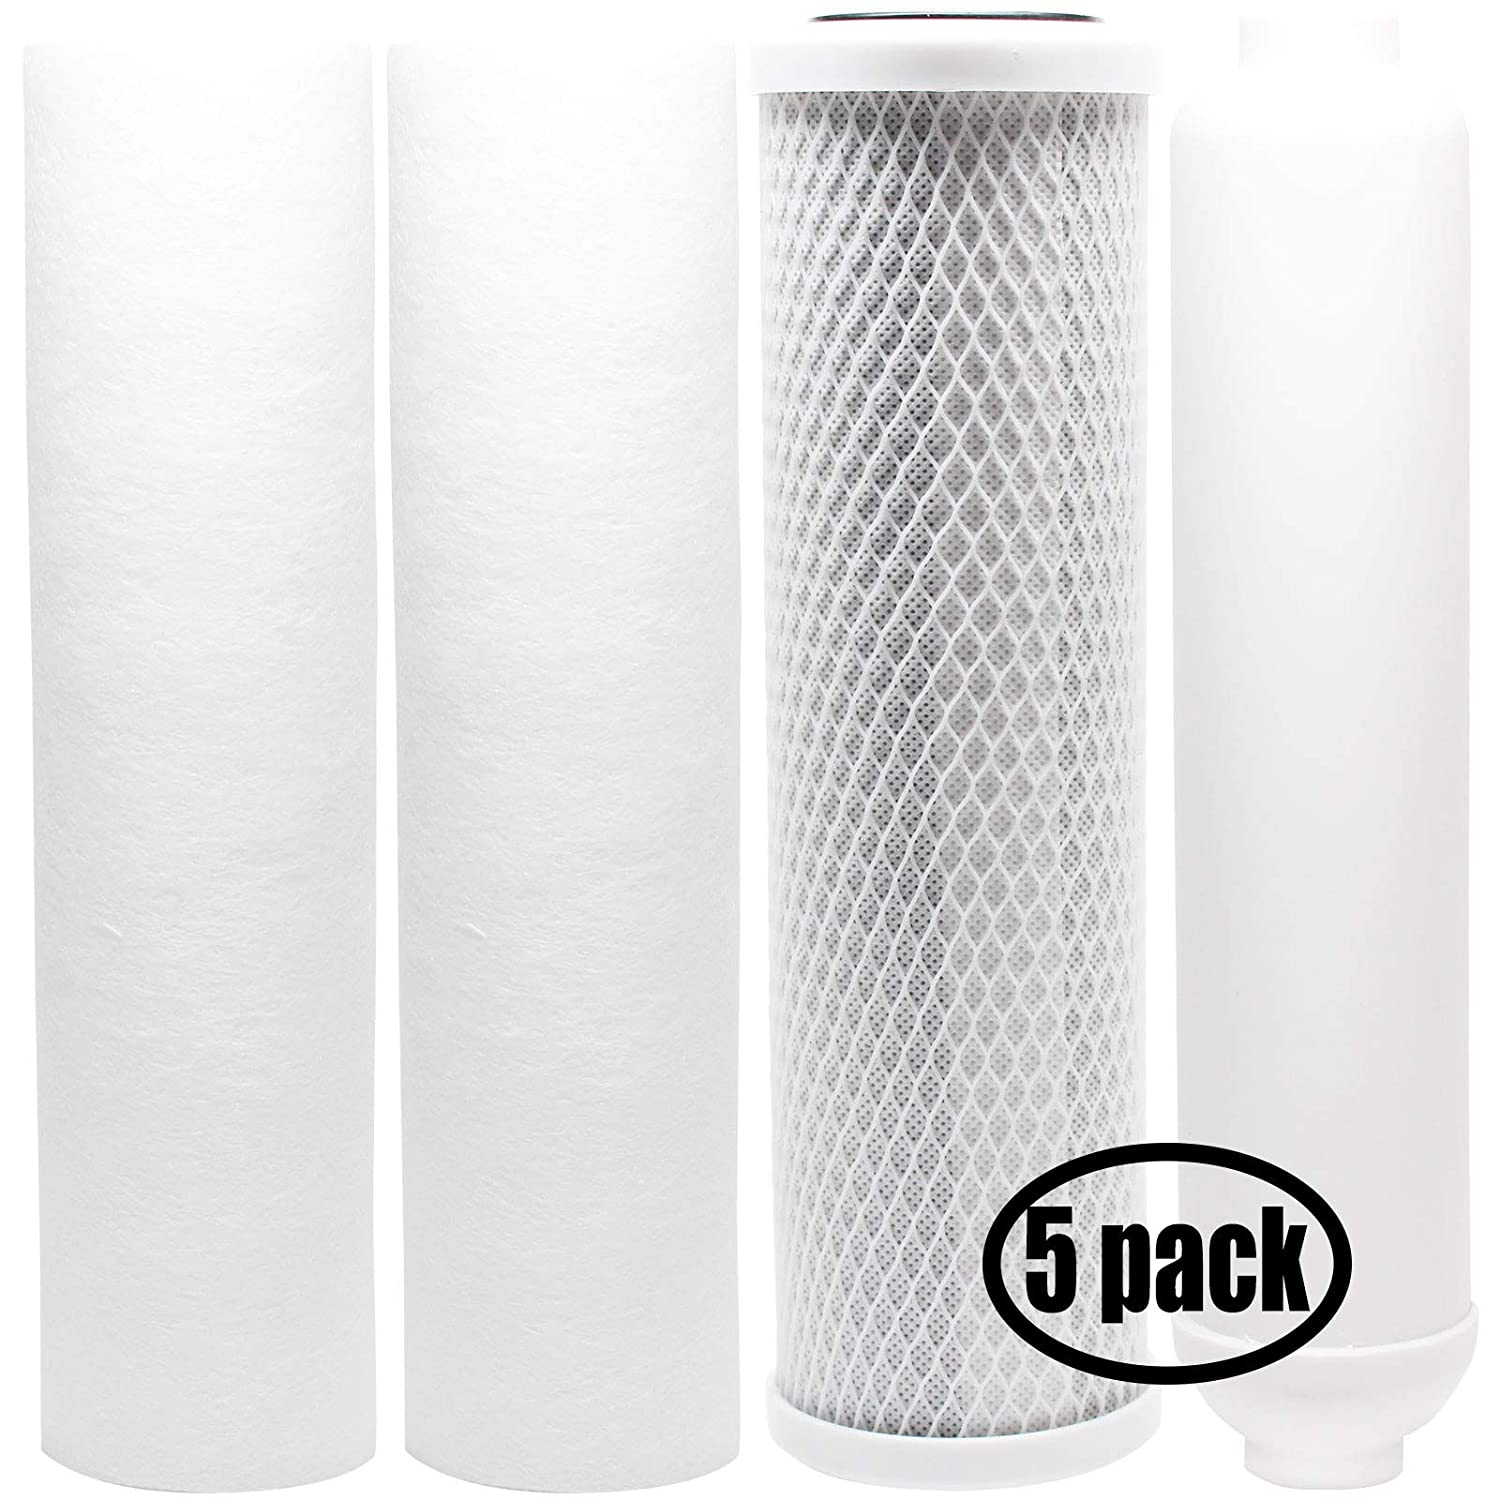 5-Pack Replacement Filter Kit Compatible with PurePro EC105-UV RO System - Includes Carbon Block Filter, PP Sediment Filters & Inline Filter Cartridge - Denali Pure Brand